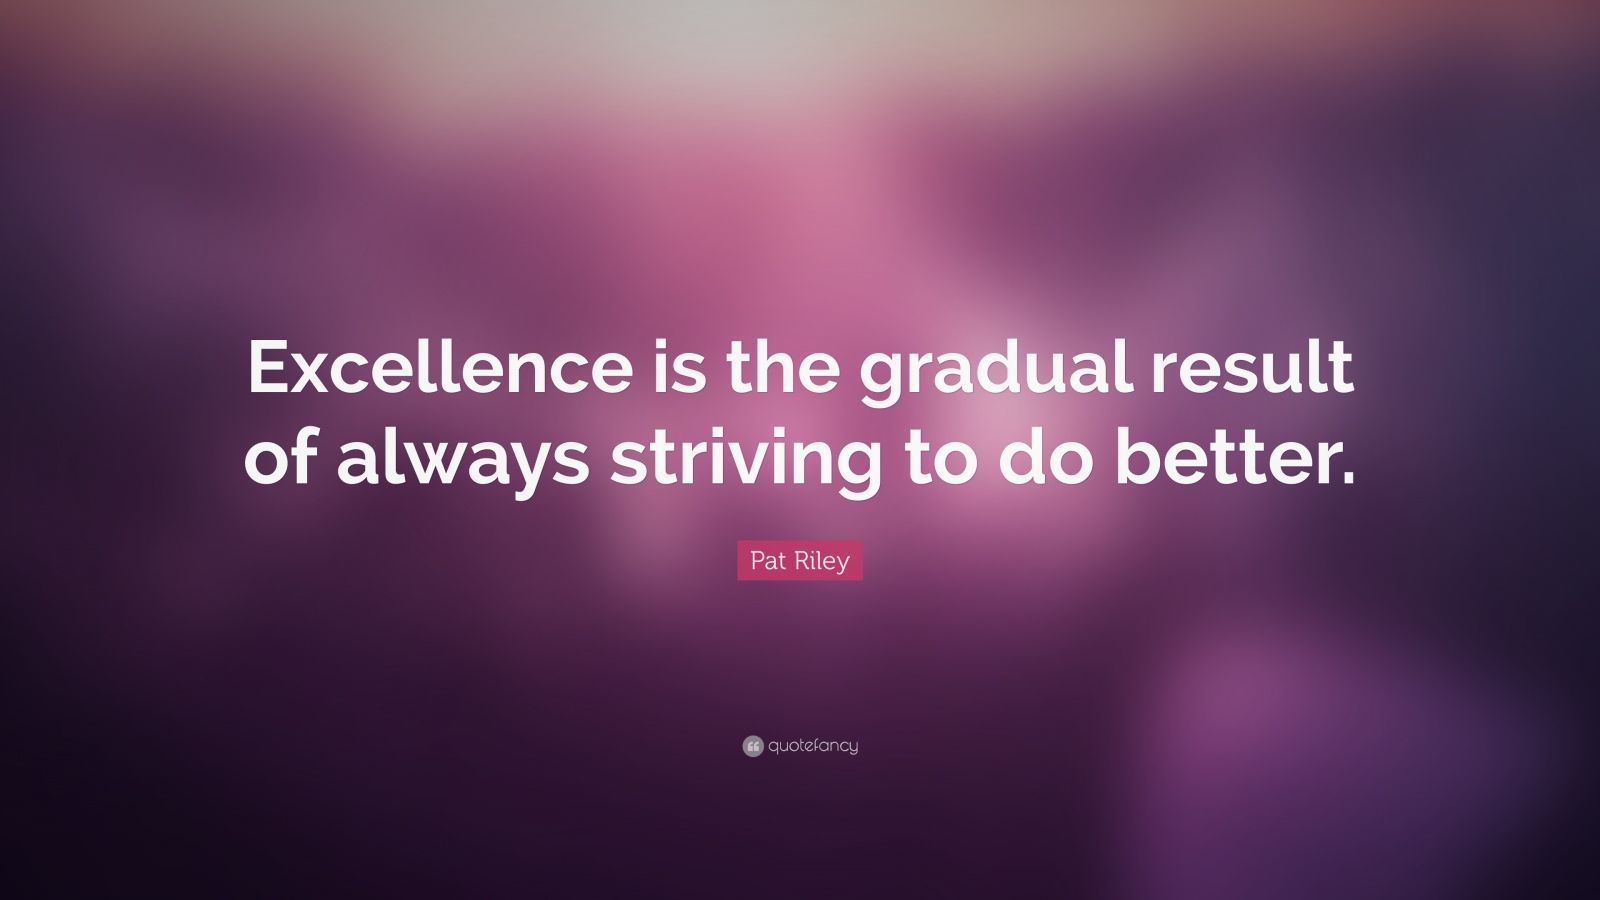 """Pat Riley Quote: """"Excellence is the gradual result of always striving to do better."""""""